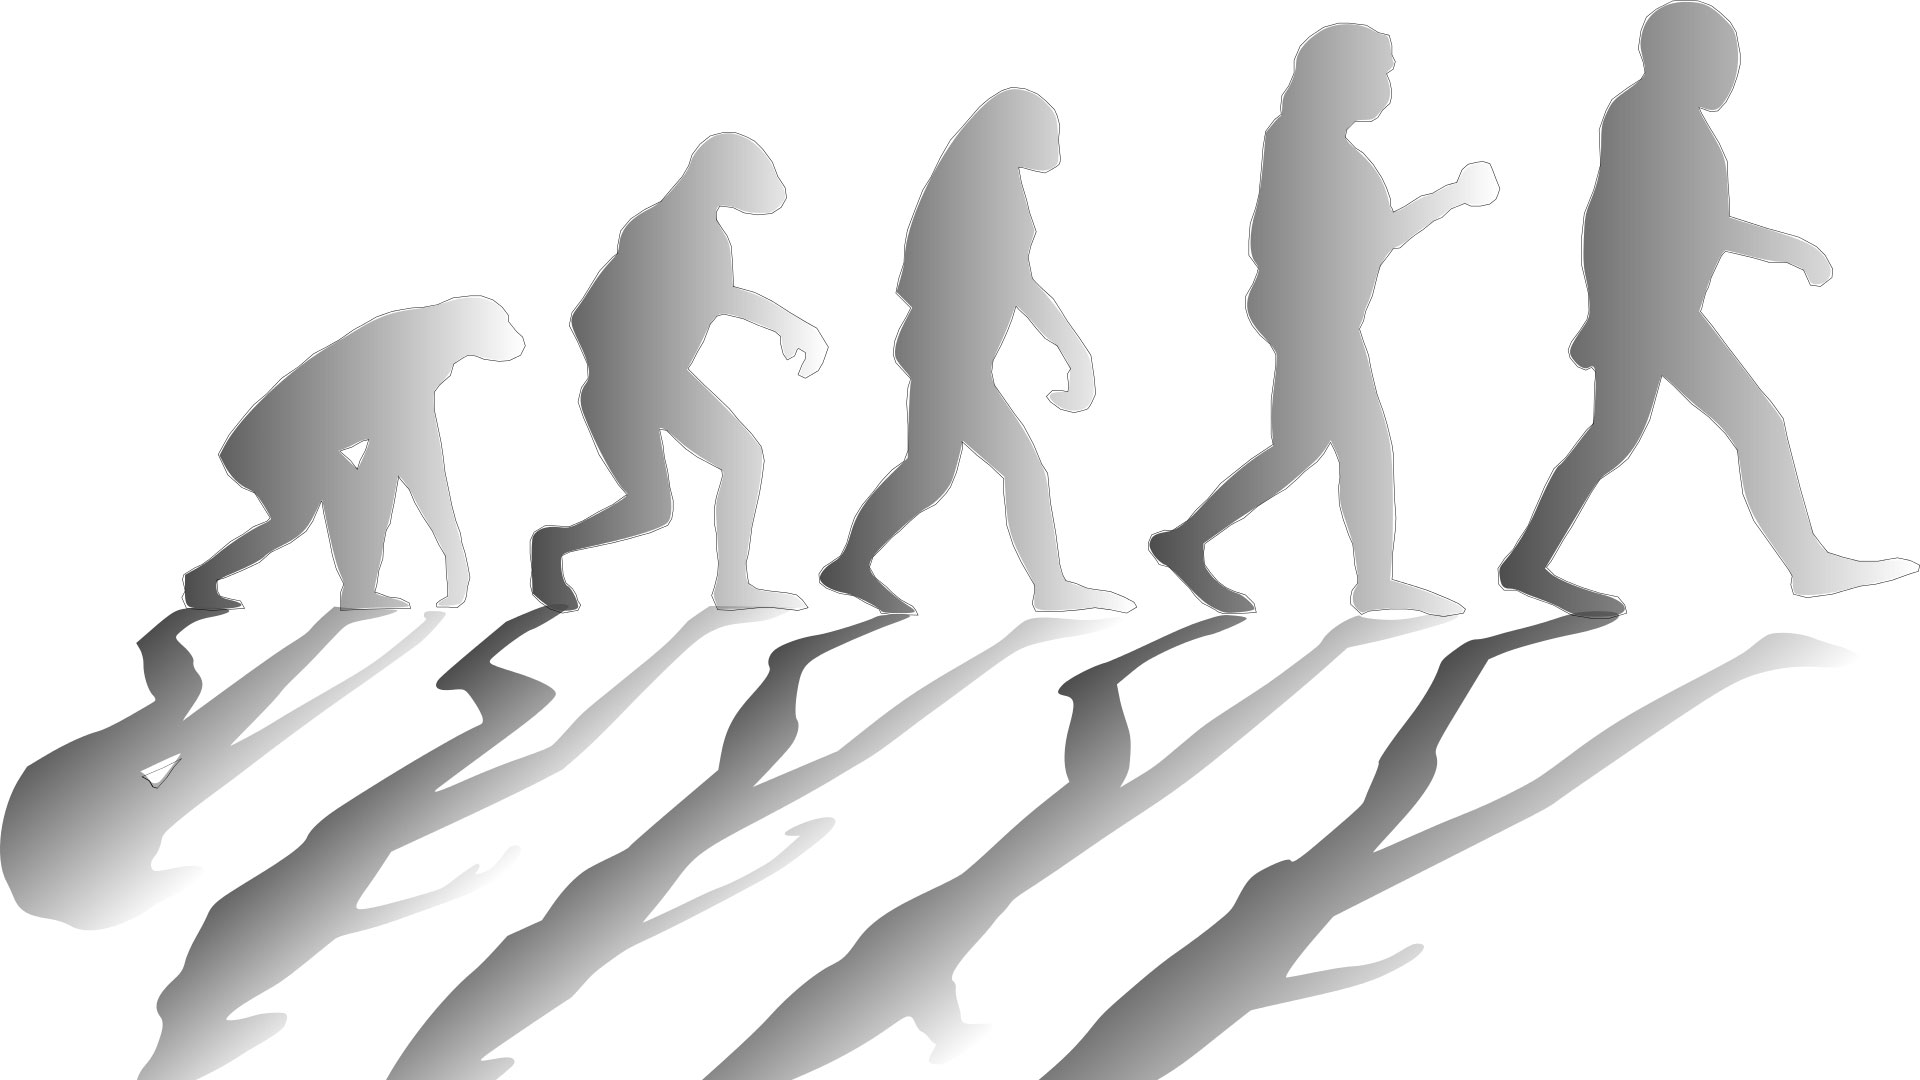 Graphic showing states of human evolution